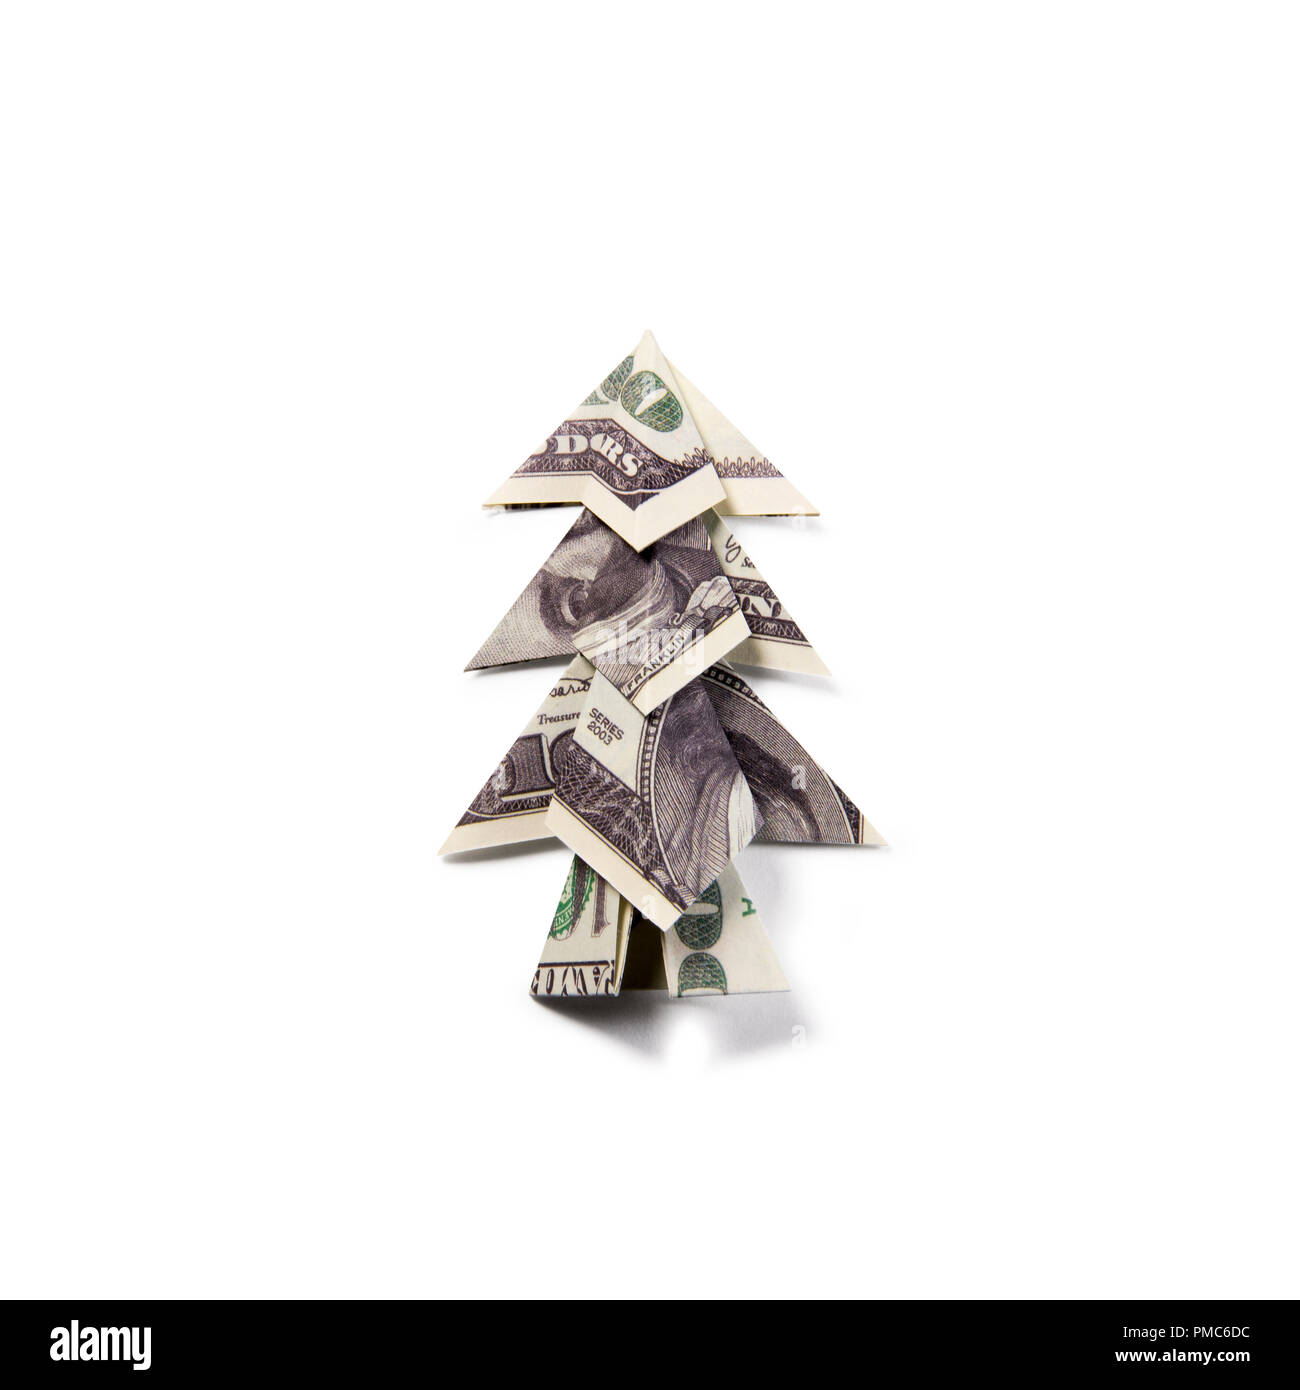 Money Origami Christmas tree - Stock Image